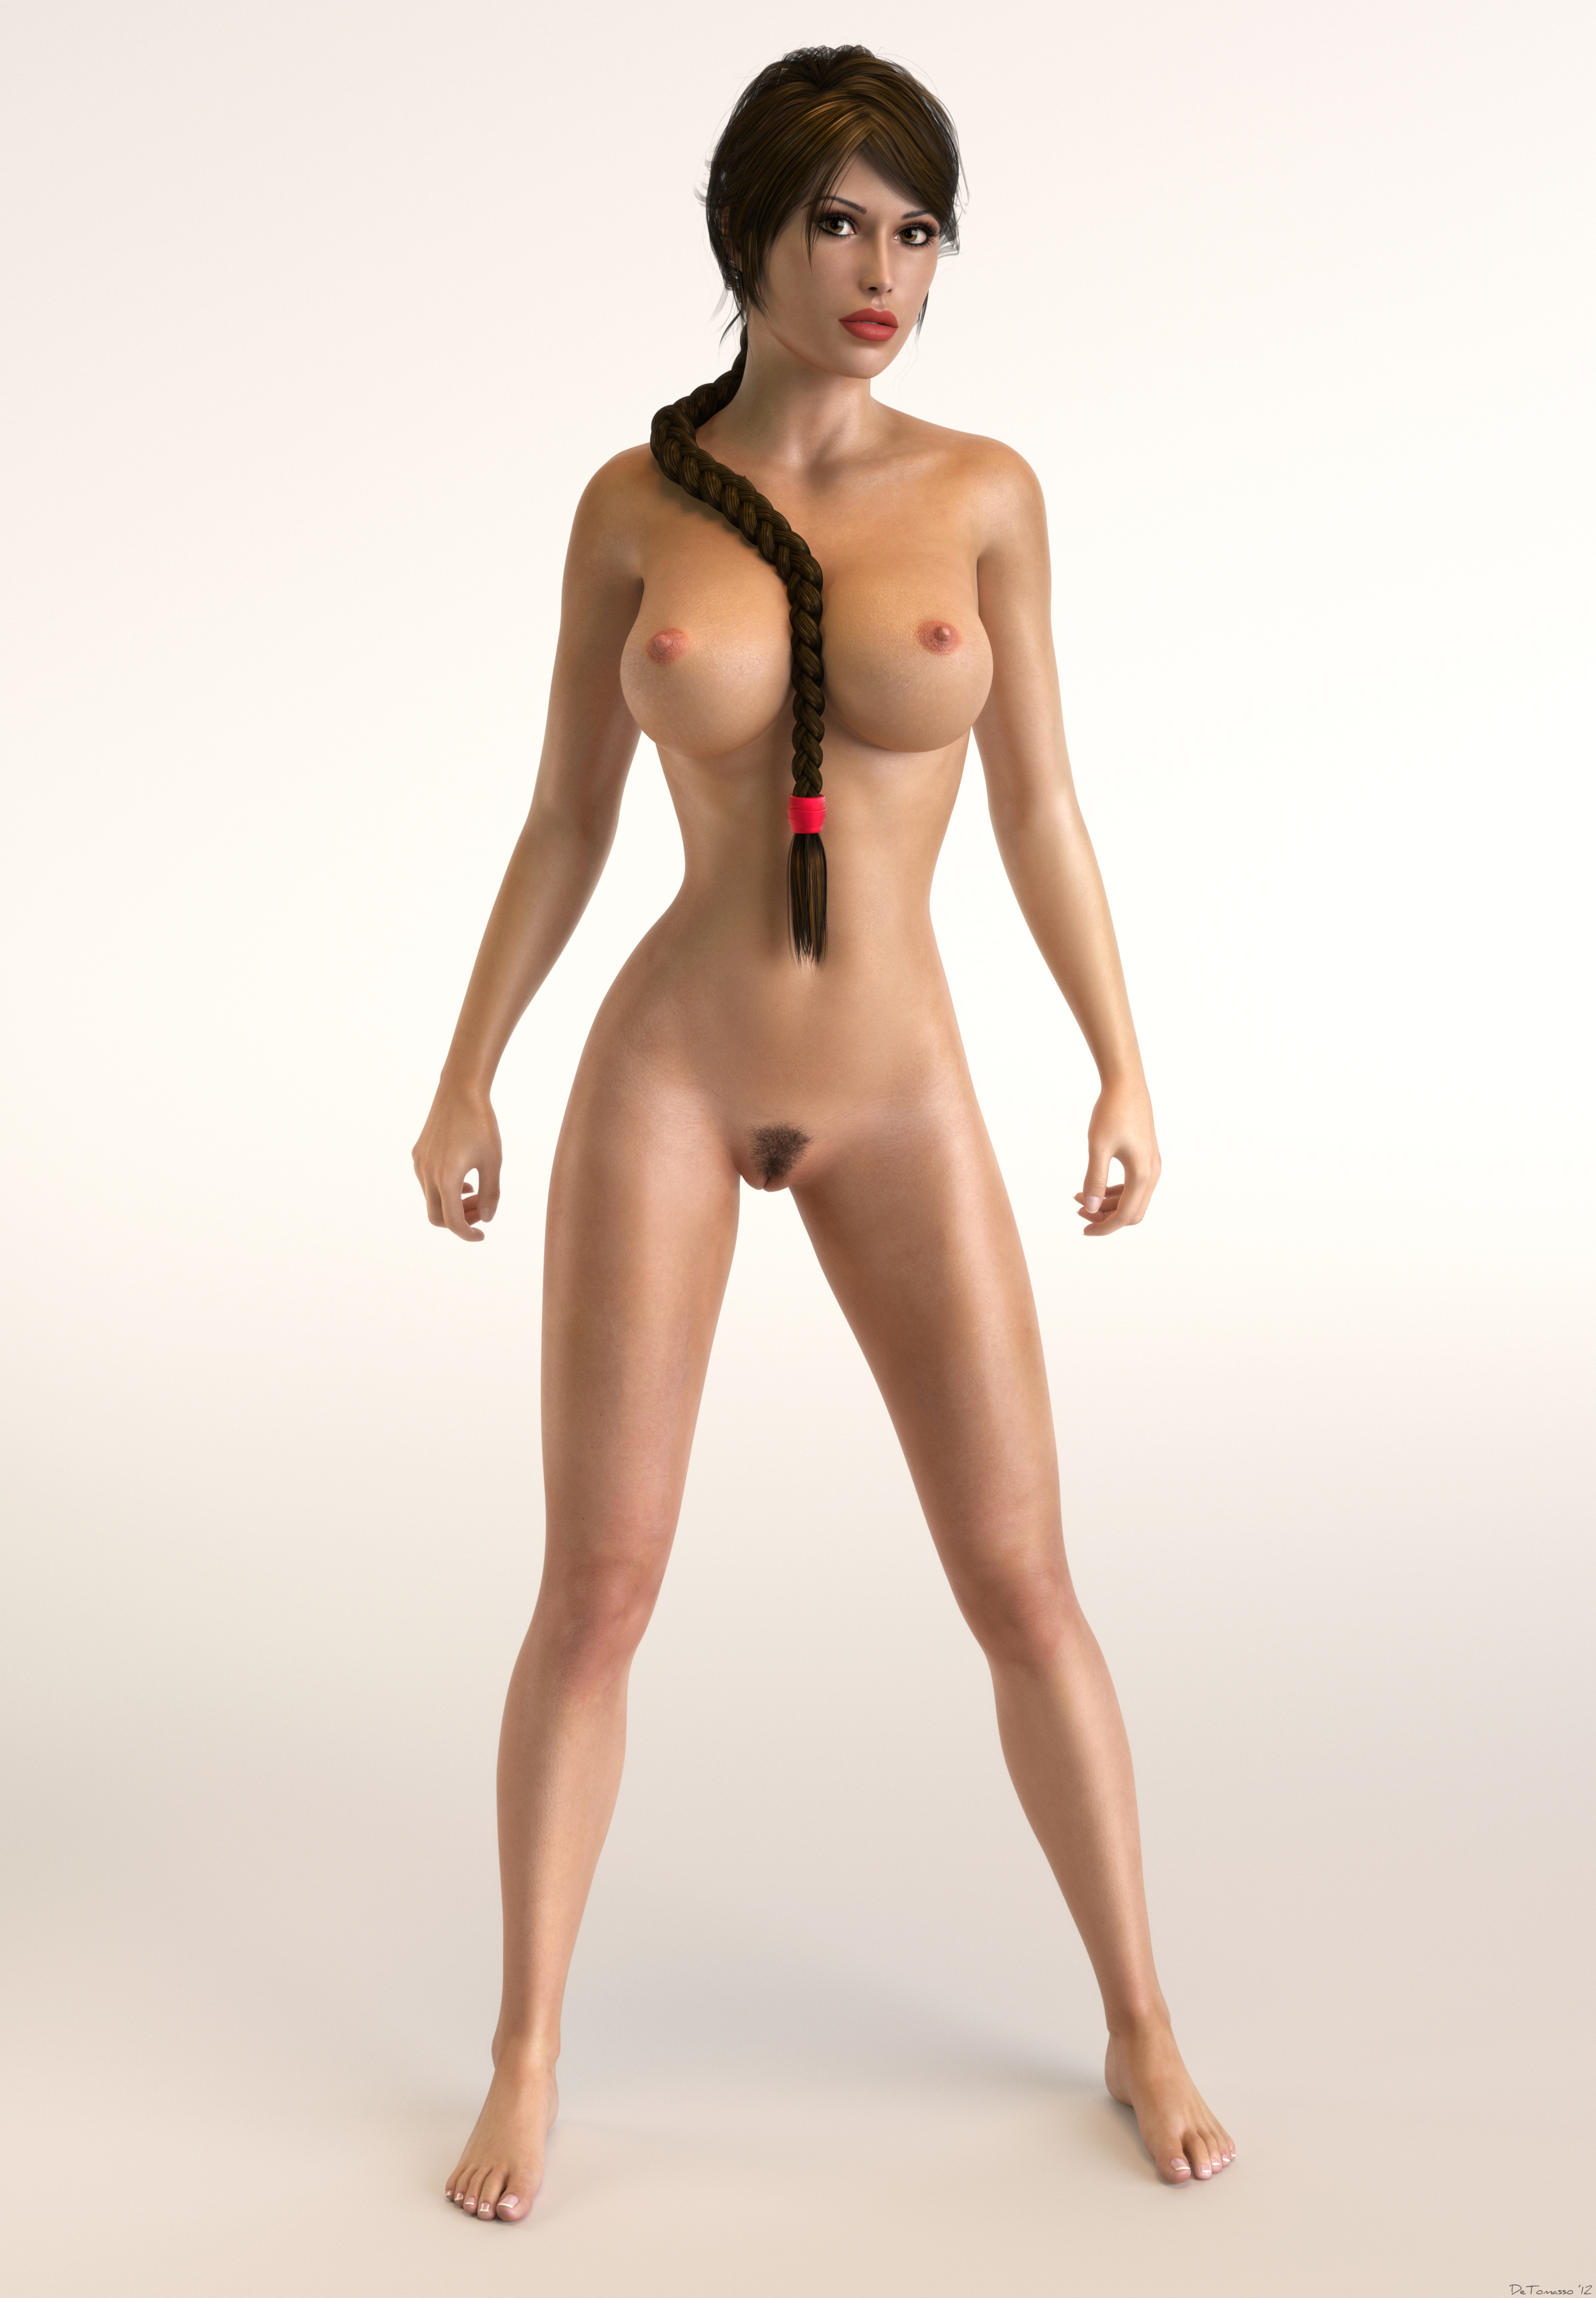 Tomb raider 2013 nude patch movies 1